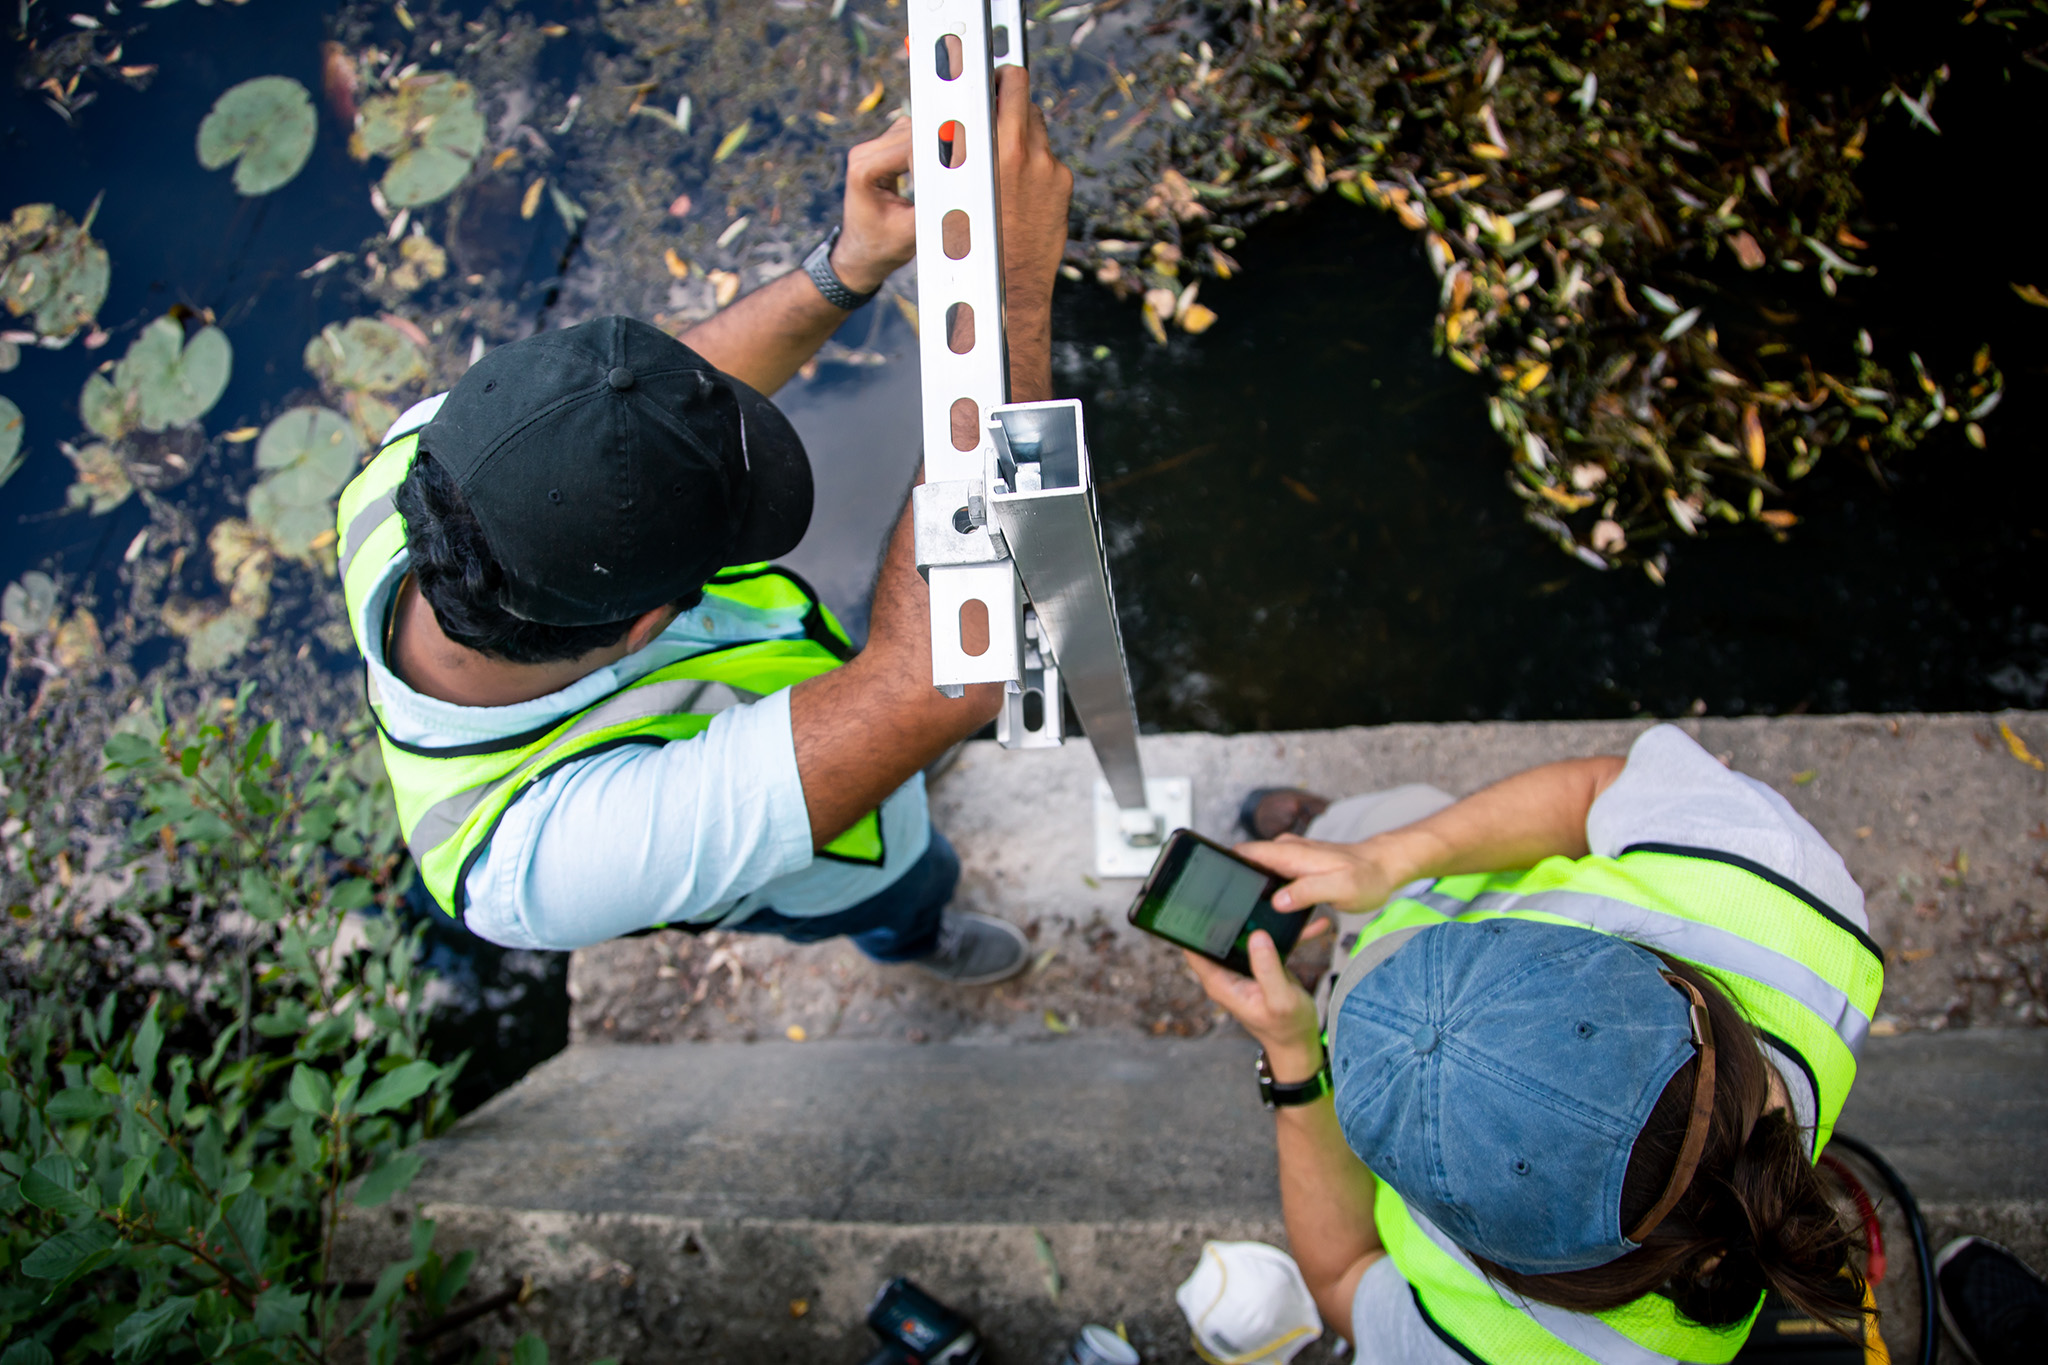 An overhead photograph of two graduate students wearing baseball caps and safety vests as they stand on a concrete ledge next to a body of water and install a metal stand for a stormwater sensor.